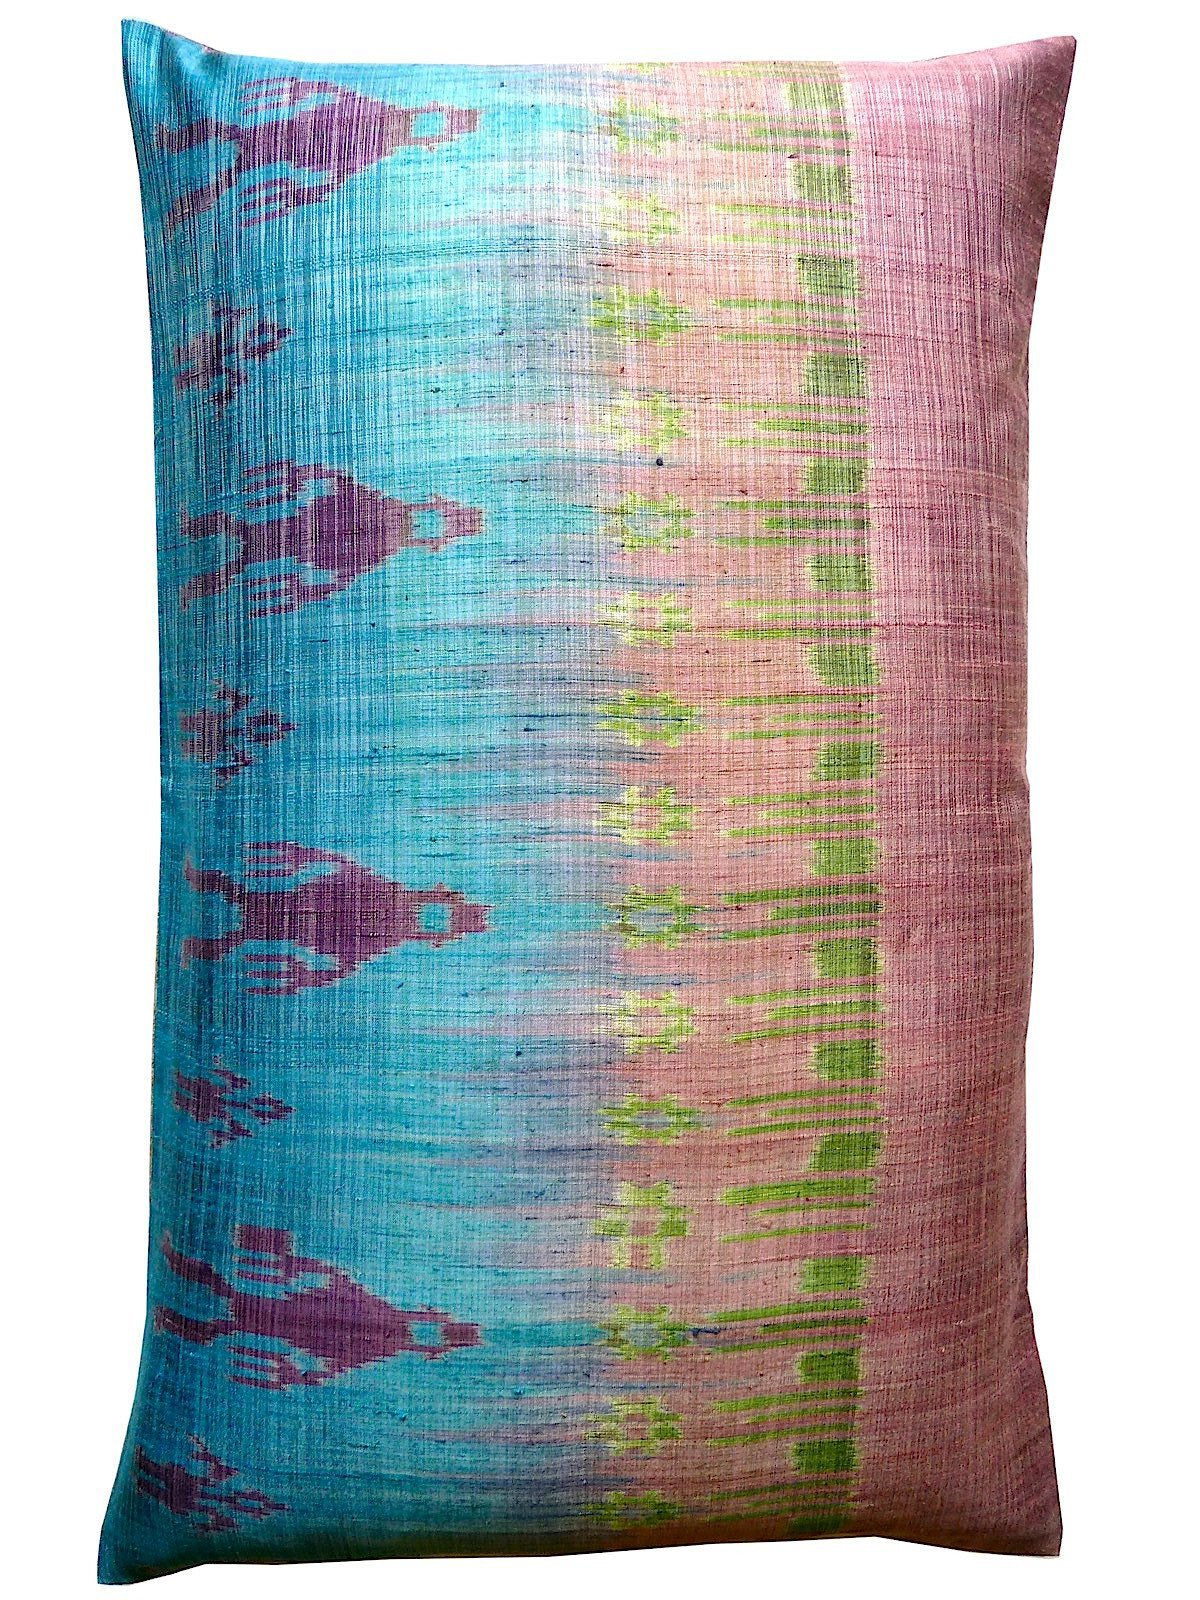 Thai Silk Modern Ikat Pillow King Sold As Pair Pink Turquoise